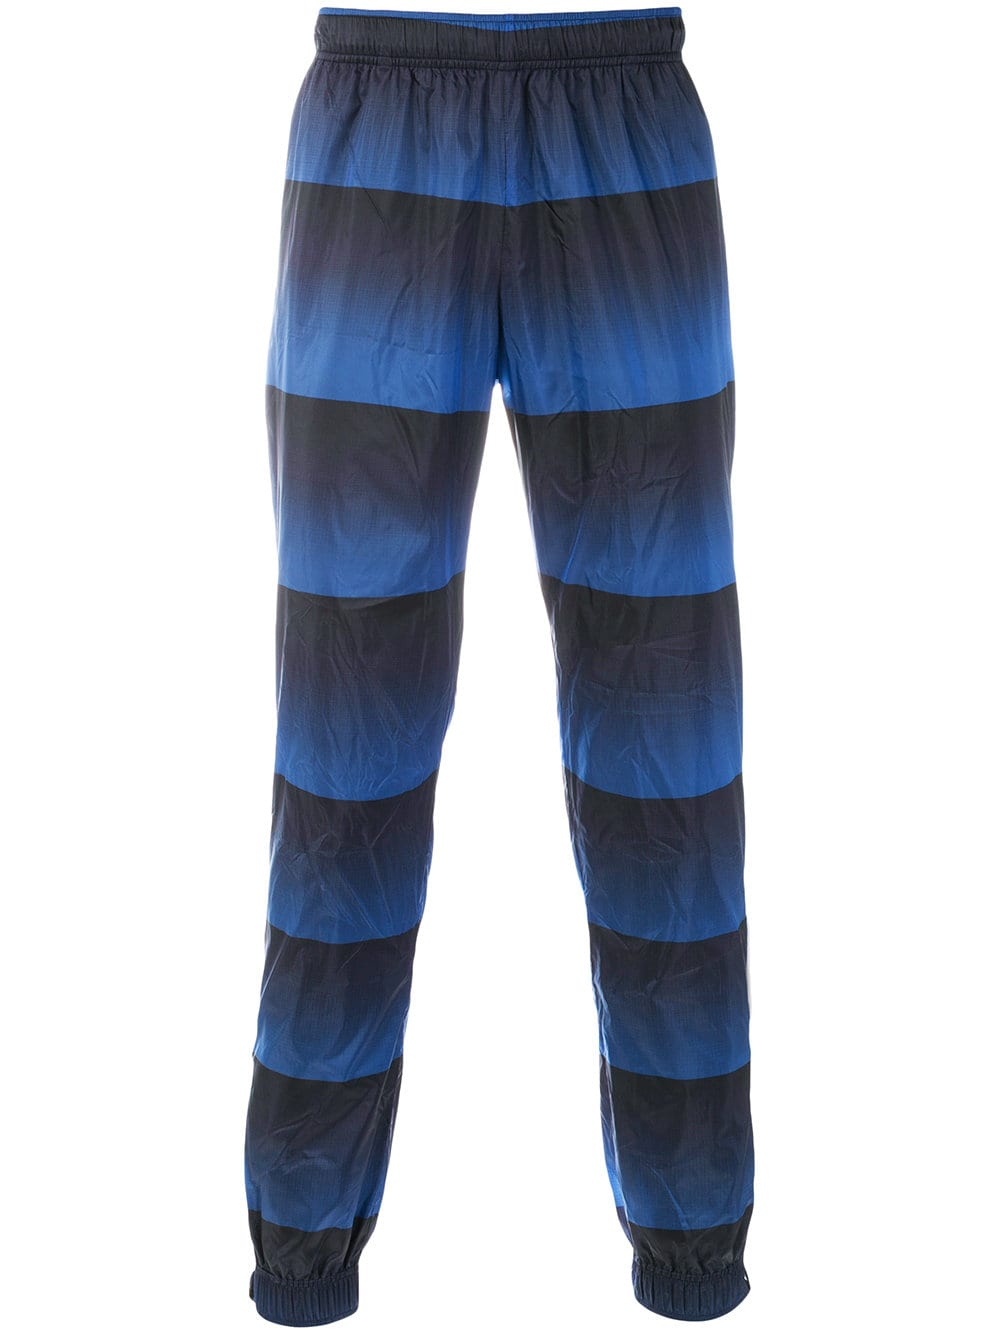 REEBOK COTTWEILER FROSTED TRACK PANTS